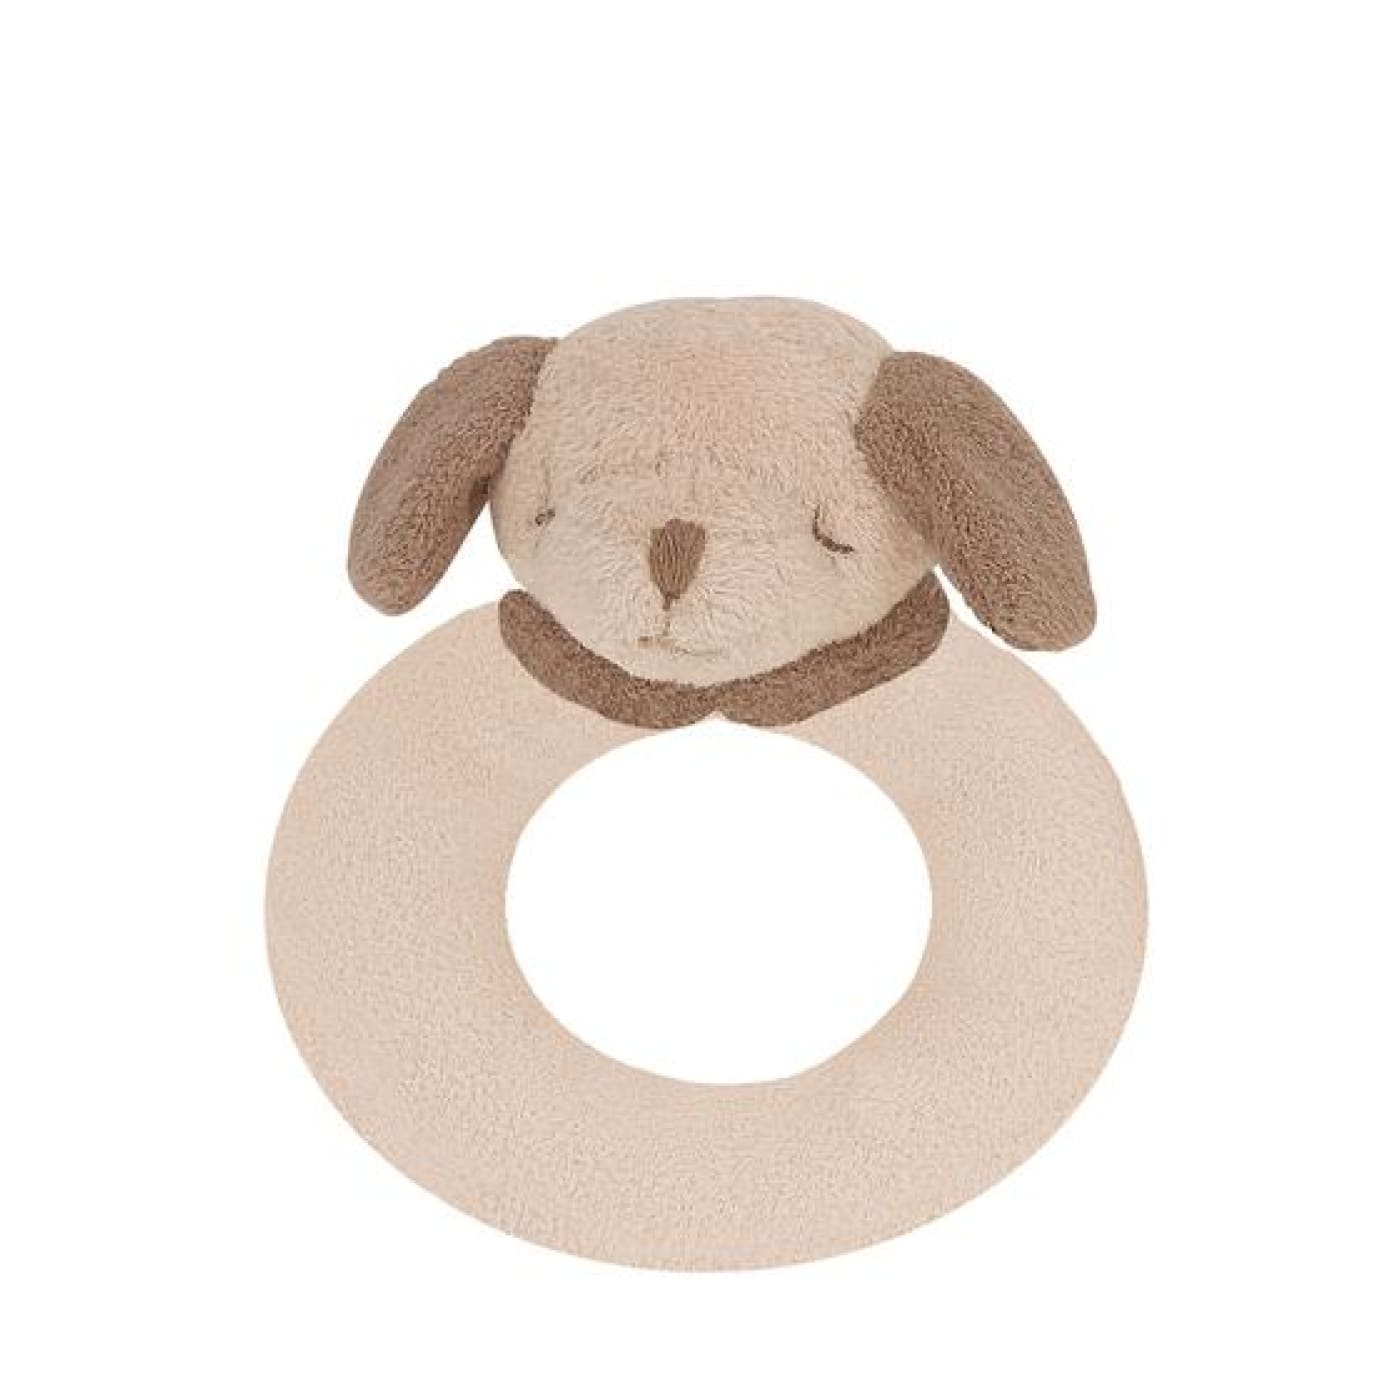 Angel Dear Ring Rattle - Brown Puppy - TOYS & PLAY - BLANKIES/COMFORTERS/RATTLES